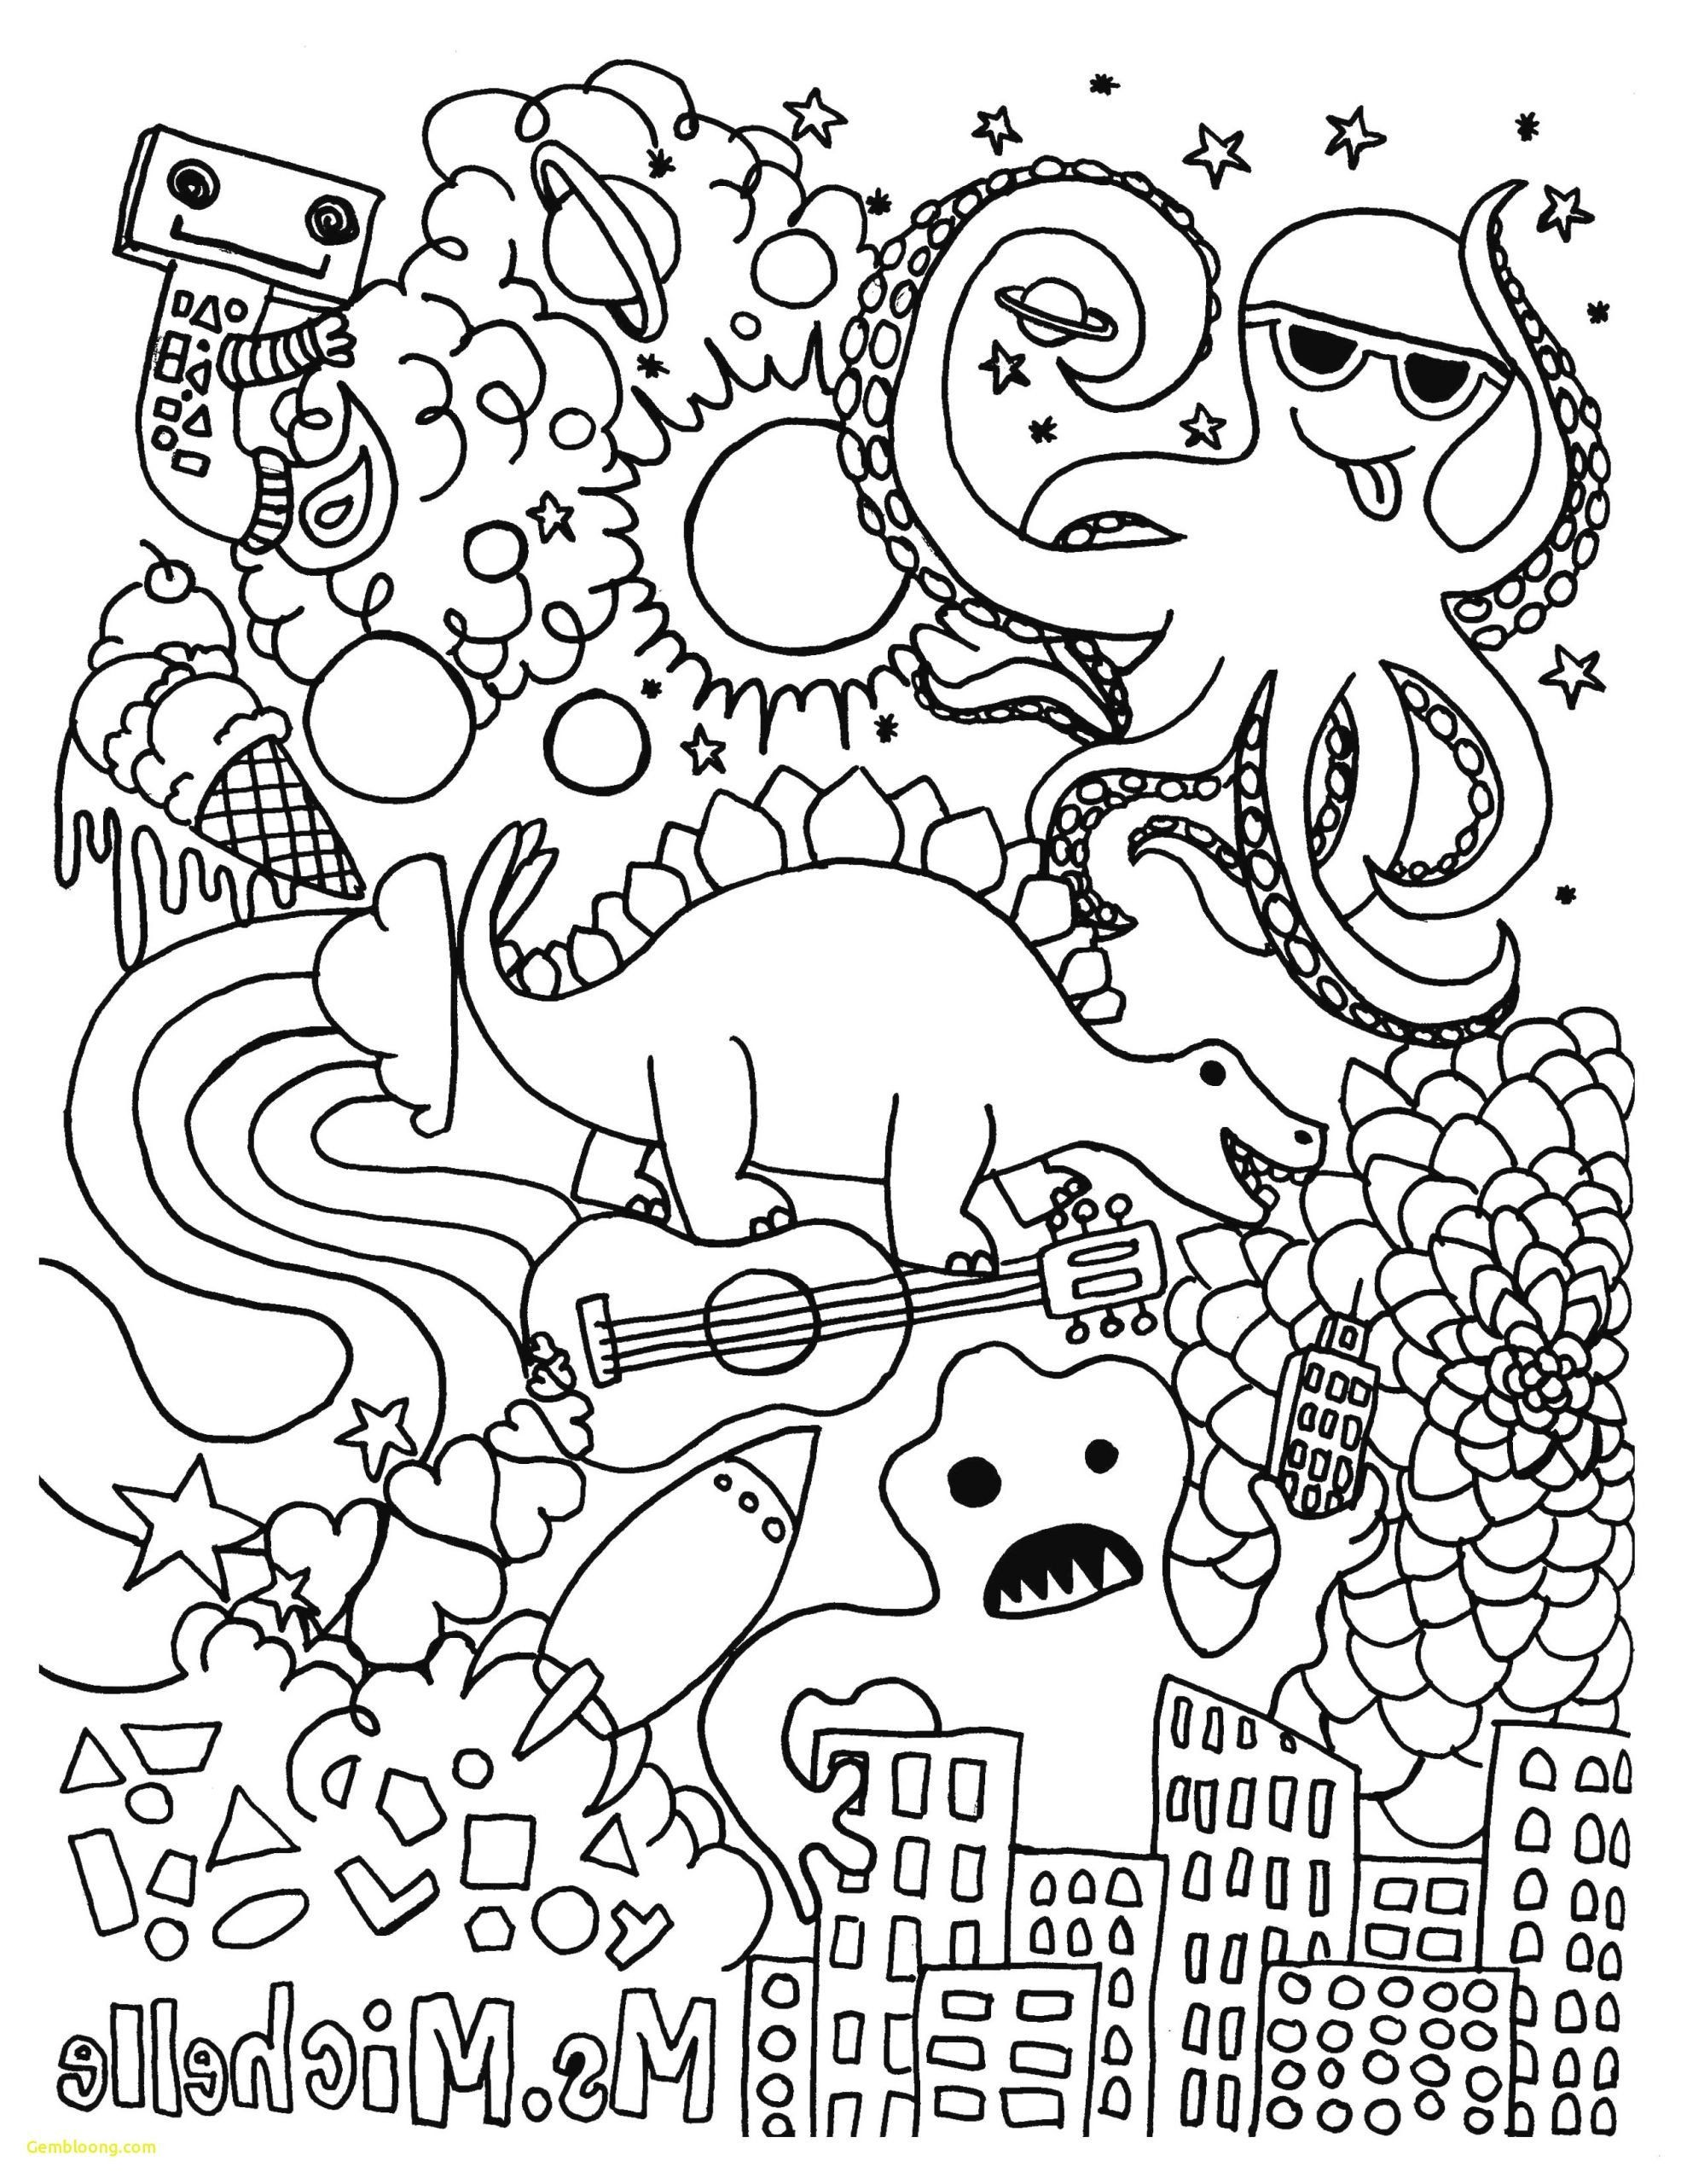 Printable Coloring Pages For Teenagers Coloring Pages Printable Coloring Pages For Tee In 2020 Hello Kitty Colouring Pages Bunny Coloring Pages Dinosaur Coloring Pages